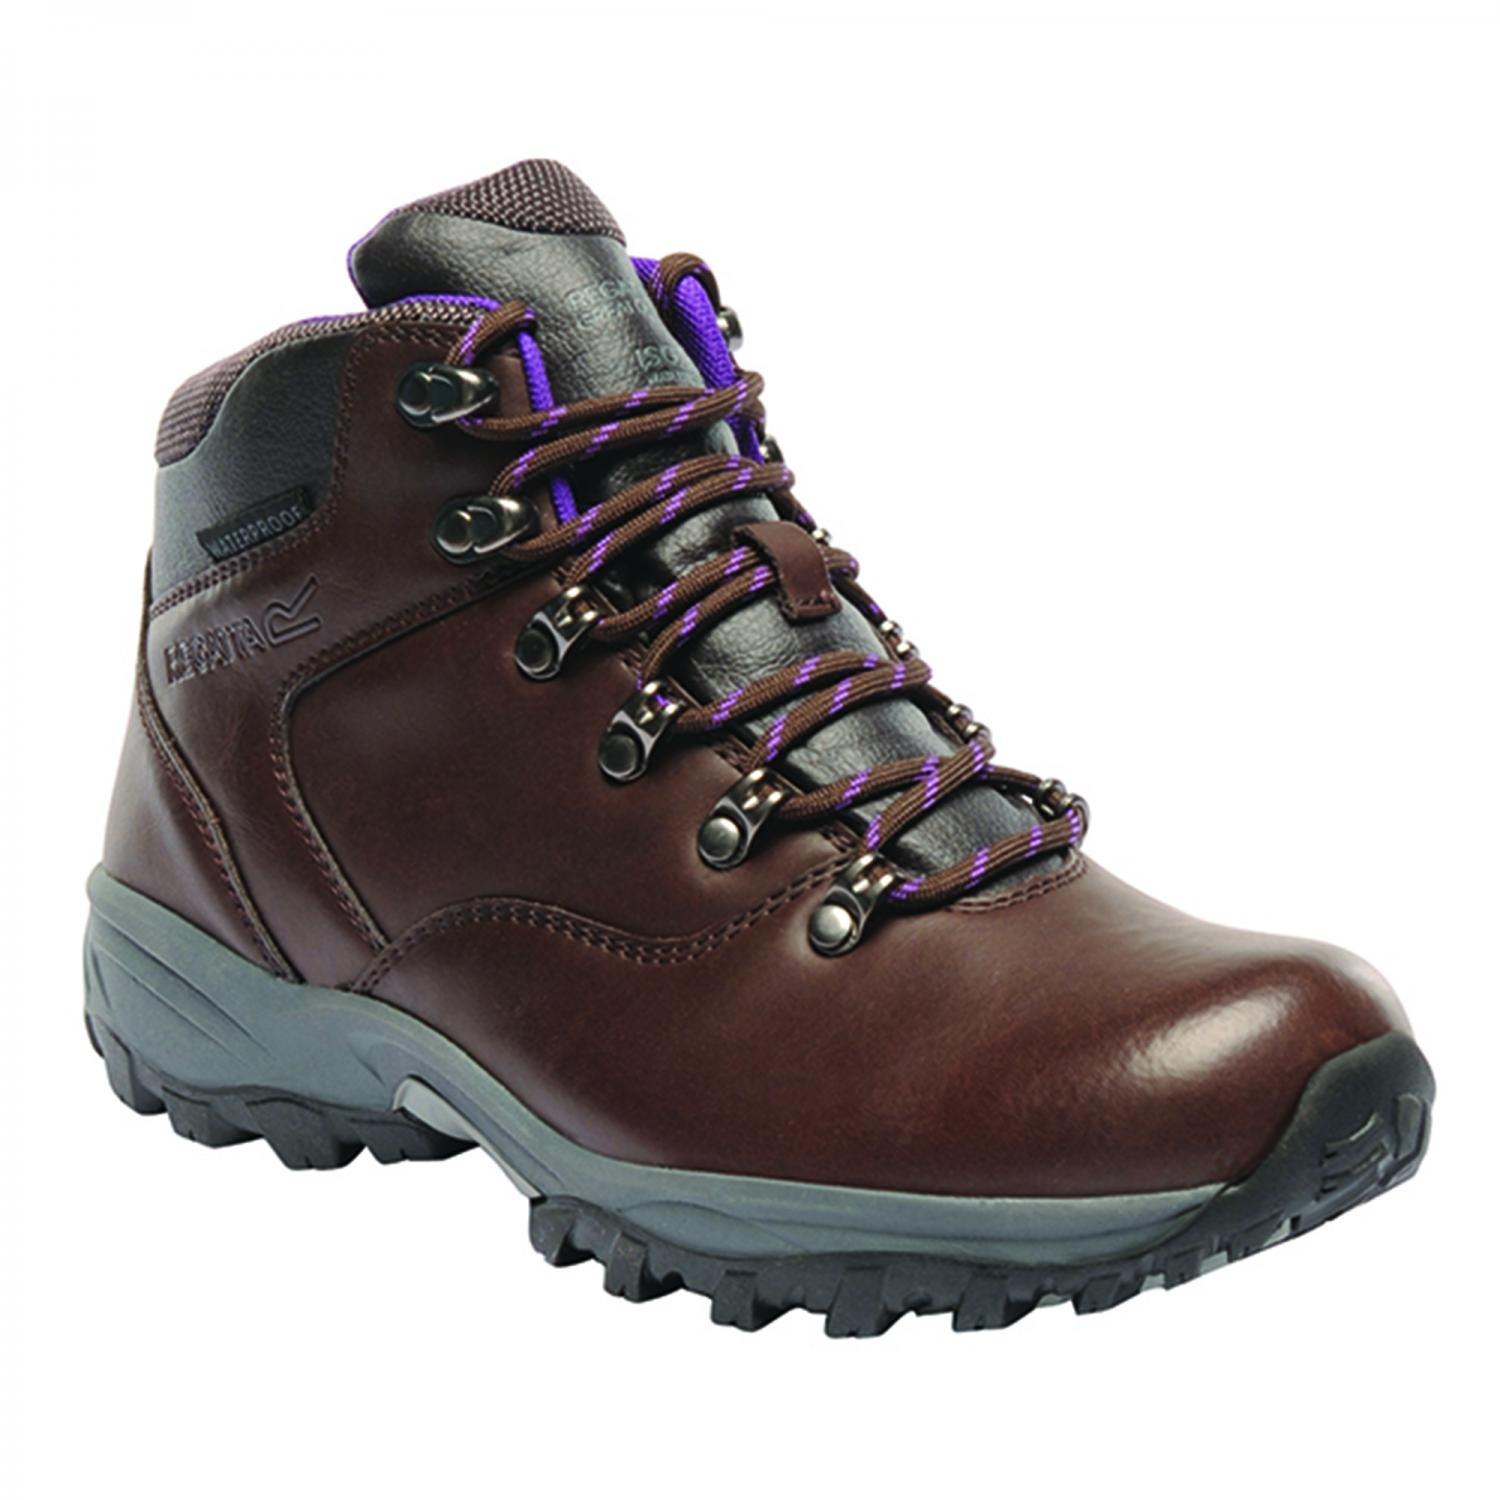 Lady Bainsford Hiking Boot Chestnut Purple